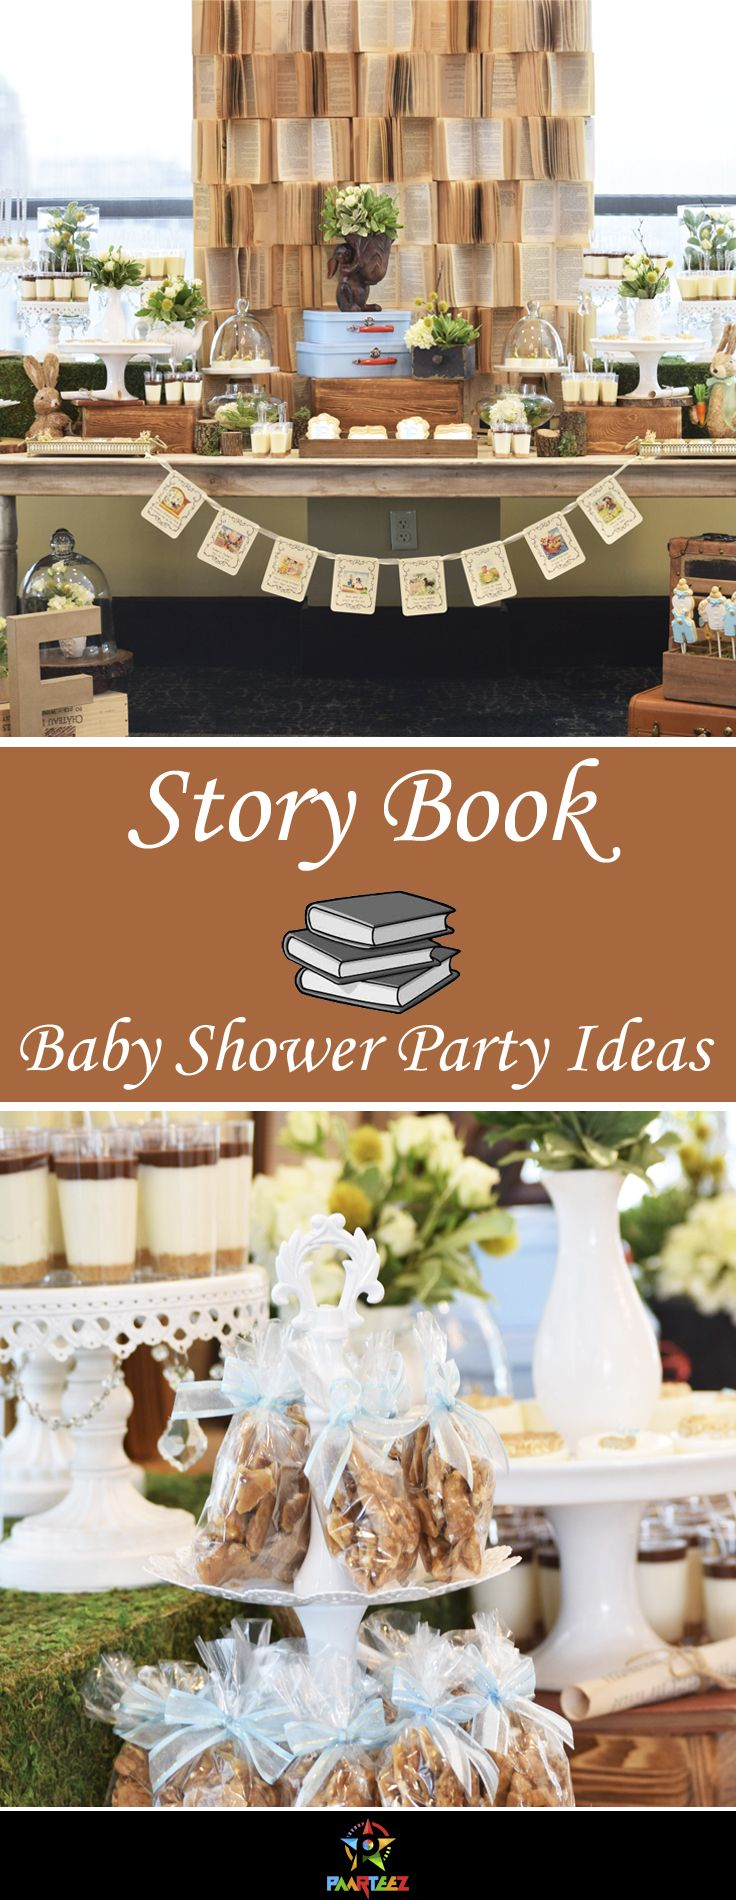 Story book themed Baby Shower party ideas for baby boy. #babyshower #partyideas